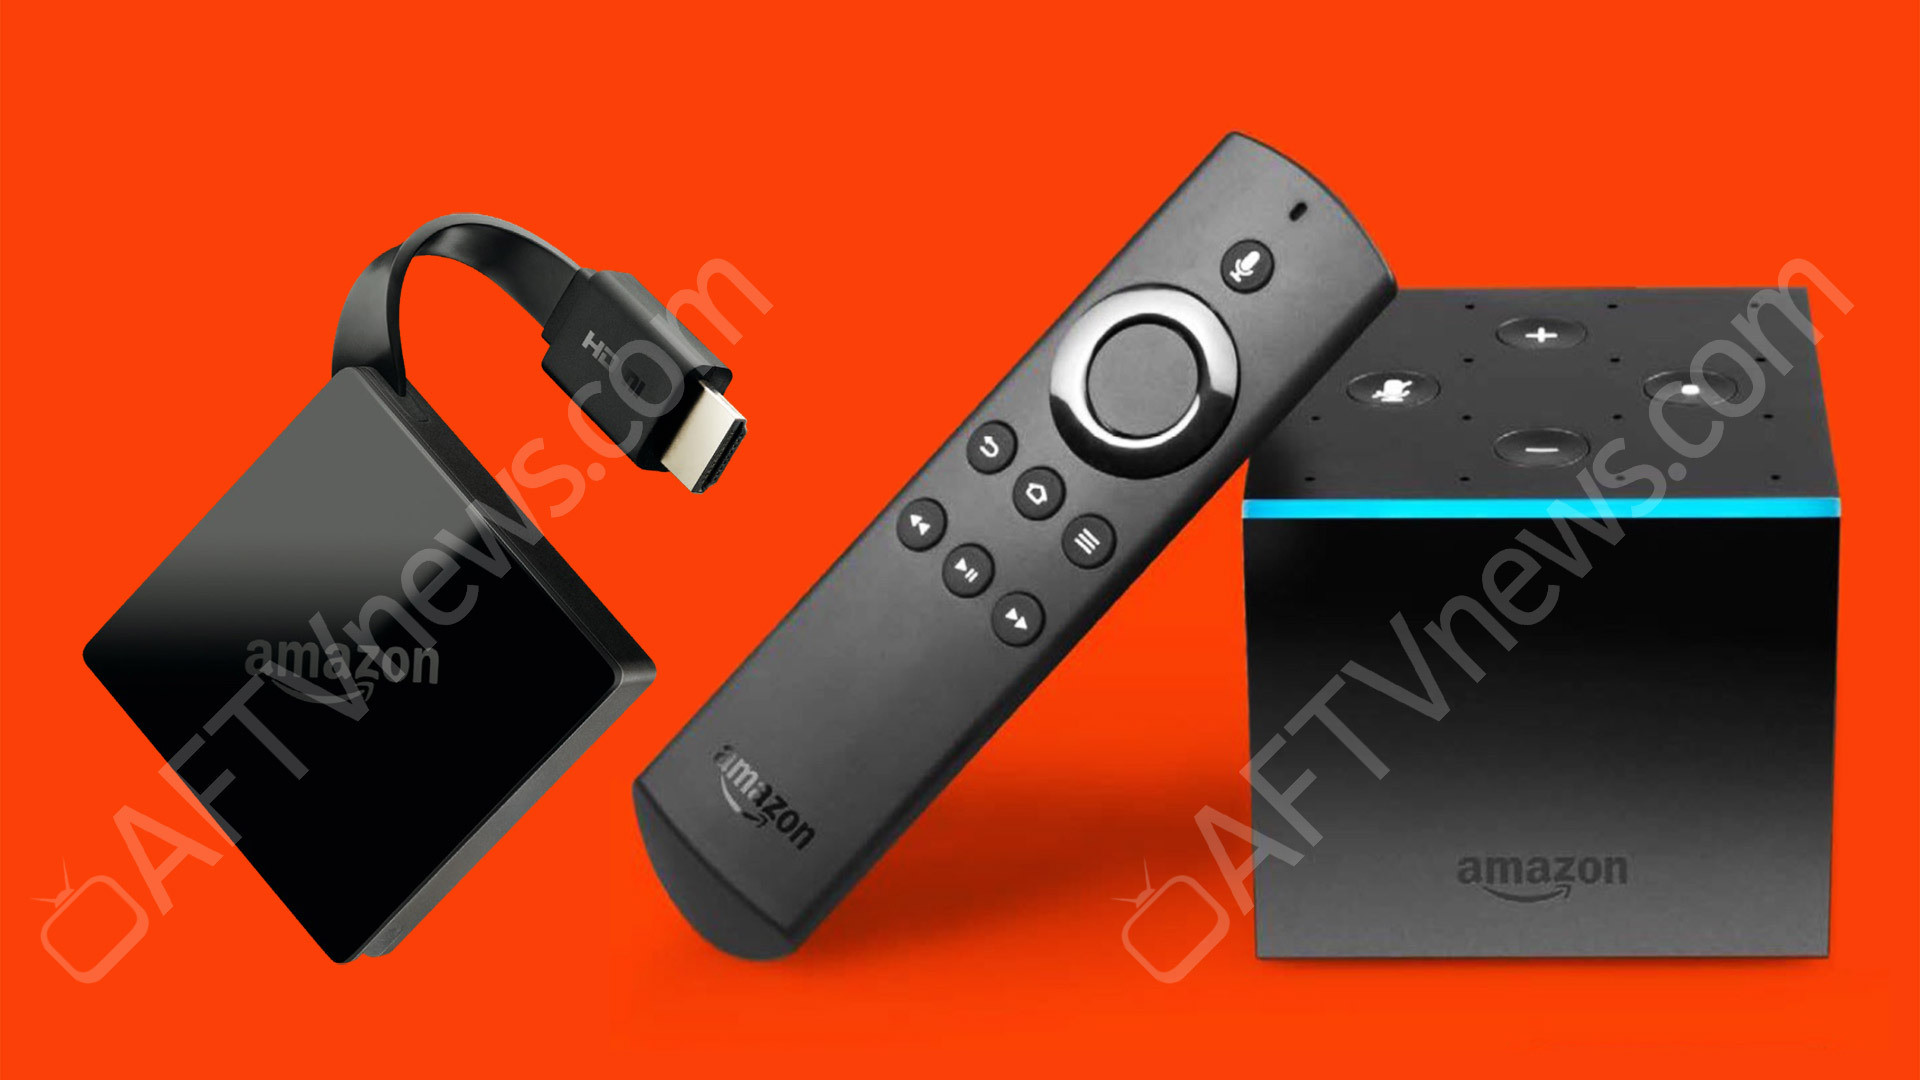 Amazon's next Fire TV may double as an Echo speaker